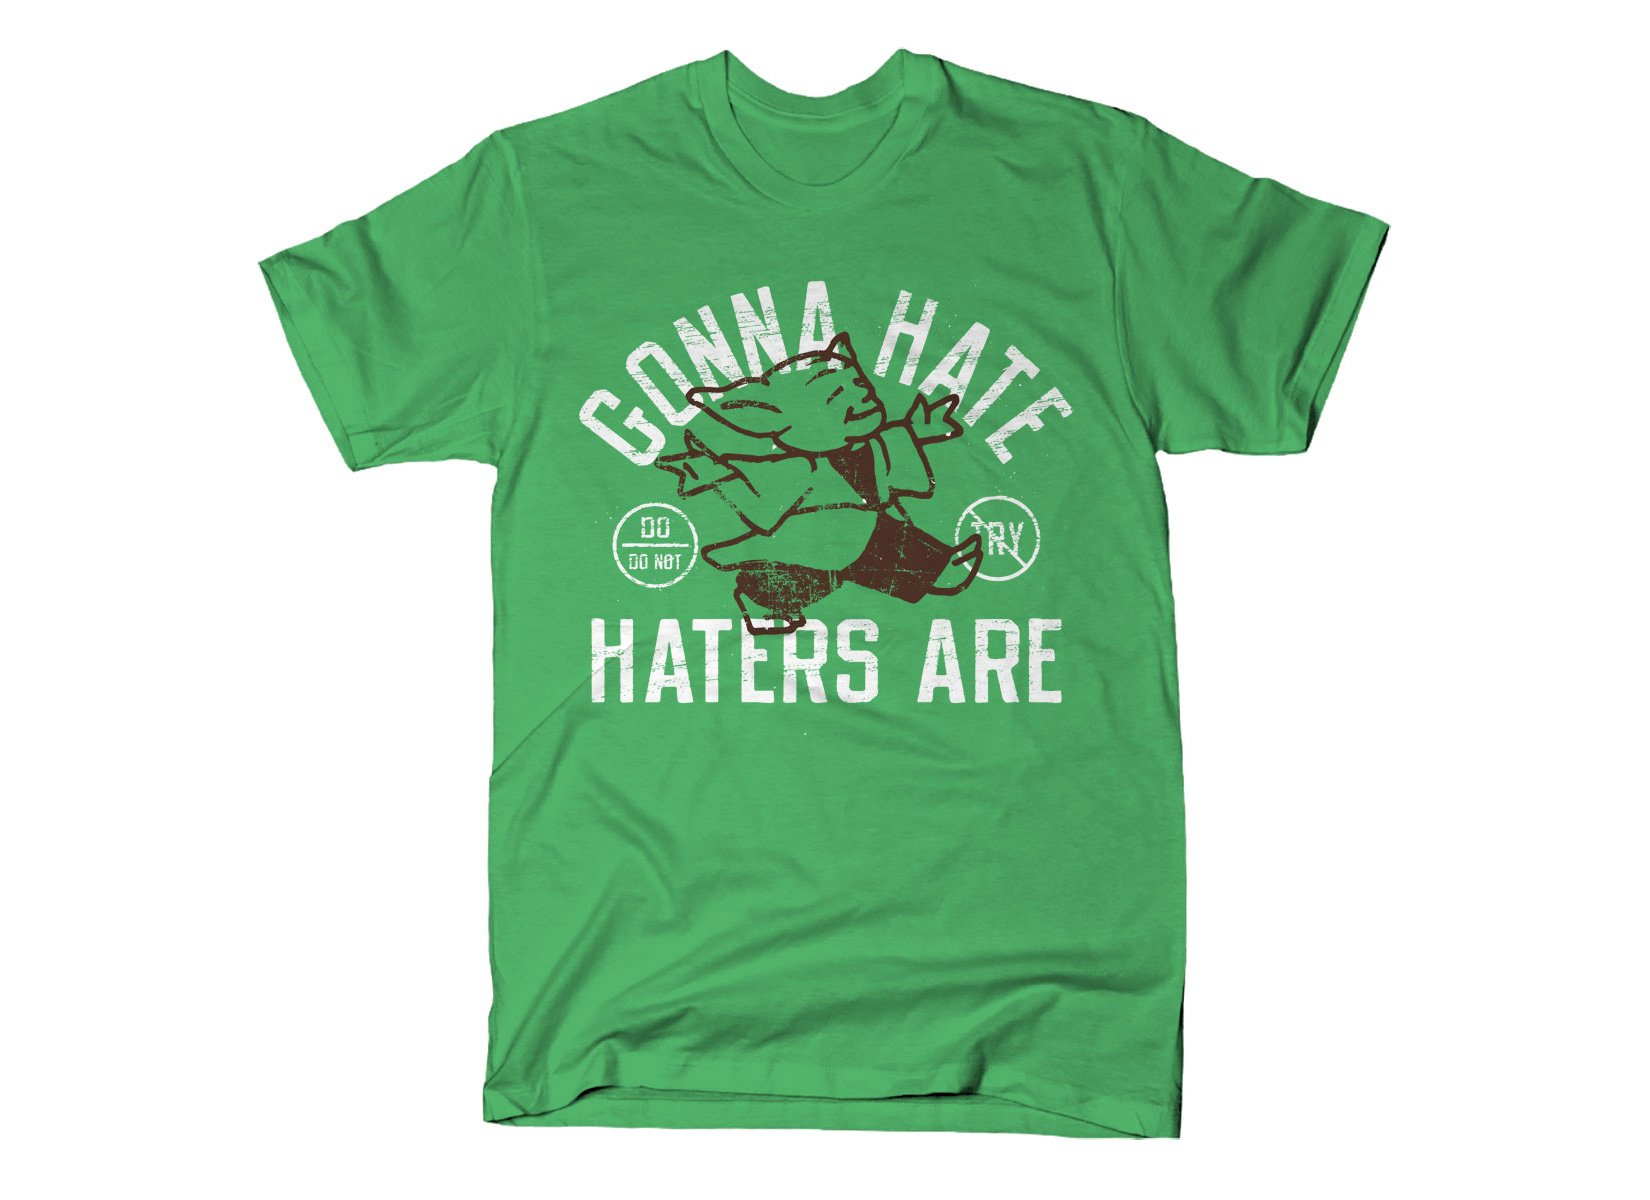 Gonna Hate Haters Are on Mens T-Shirt